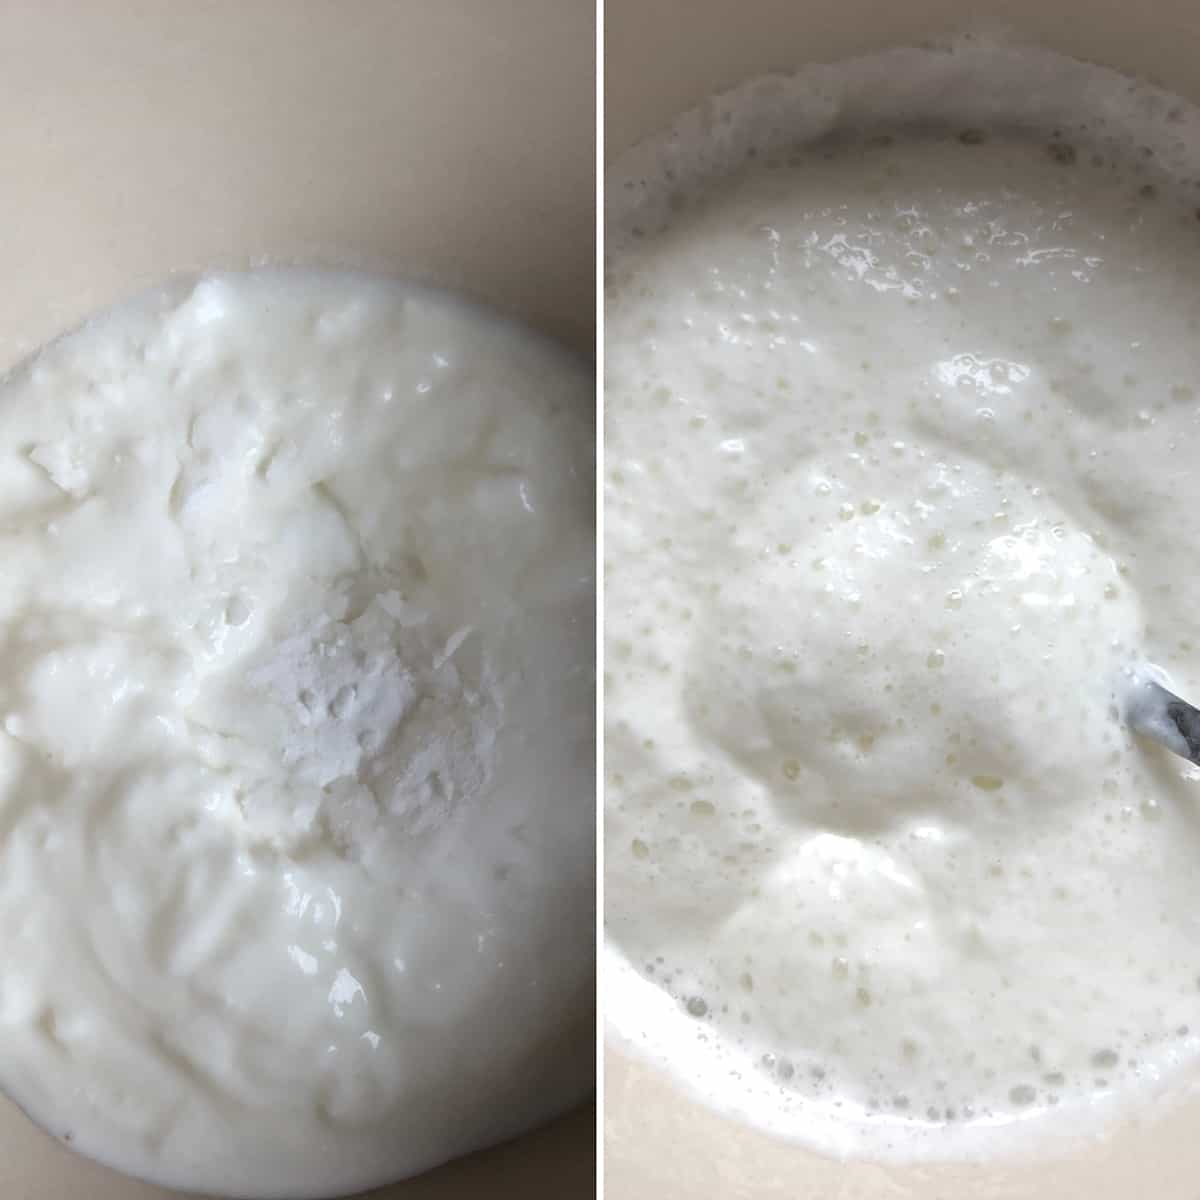 Baking soda added to yogurt and the frothy mixture